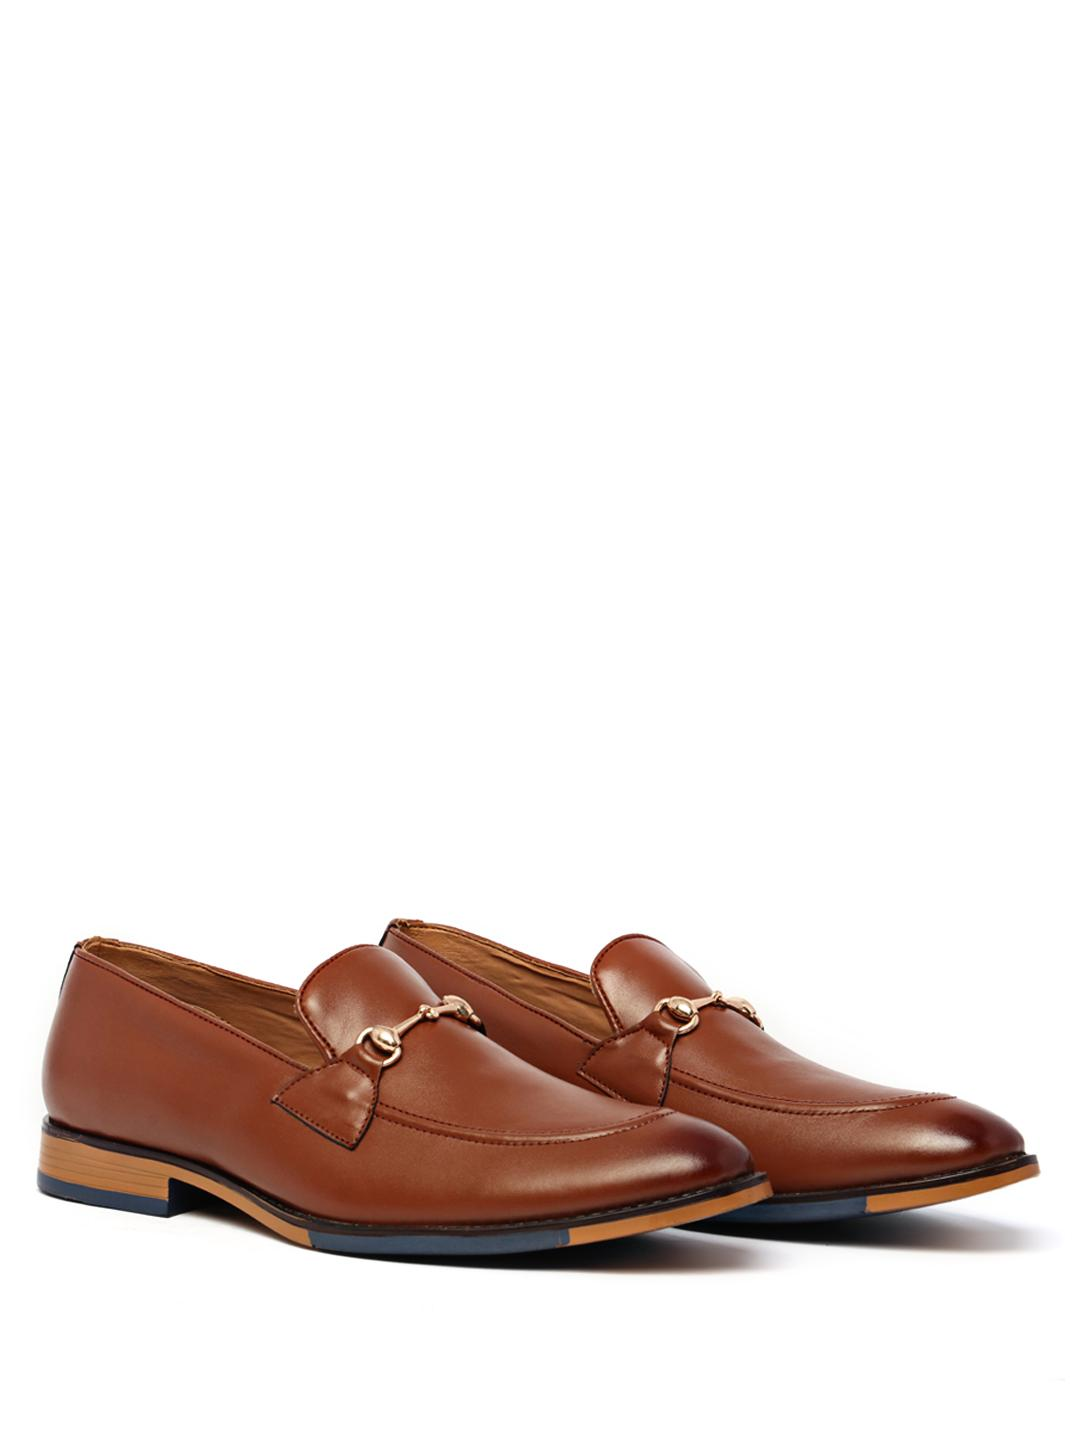 KLEAT Tan Horsebit Detail Loafers 1